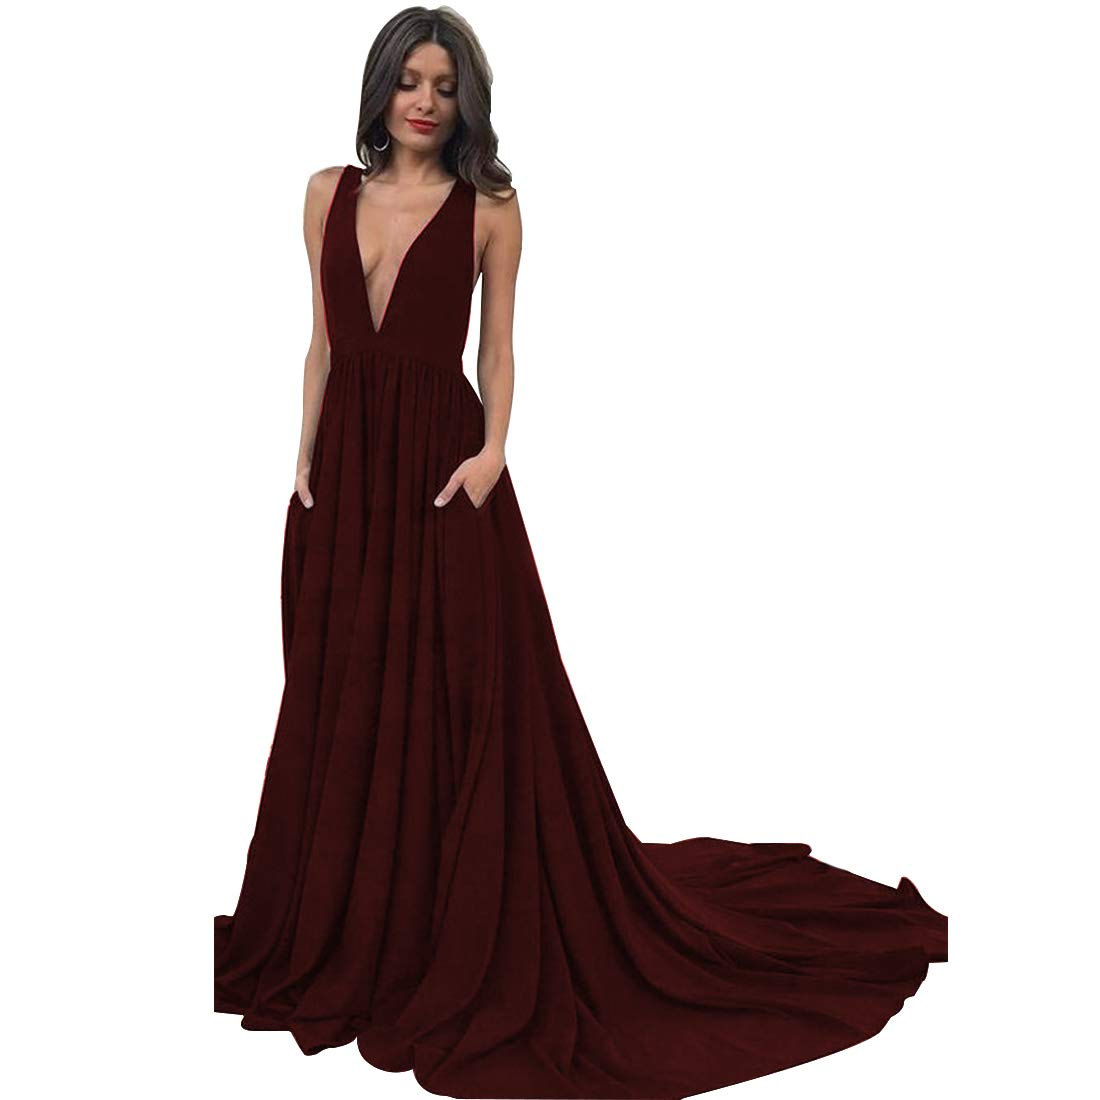 Dexinyuan Deep V Neck Satin Long Prom Dresses Backless Sweep Train Formal  Party Dresses with Pockets at Amazon Women s Clothing store  67e5404a8